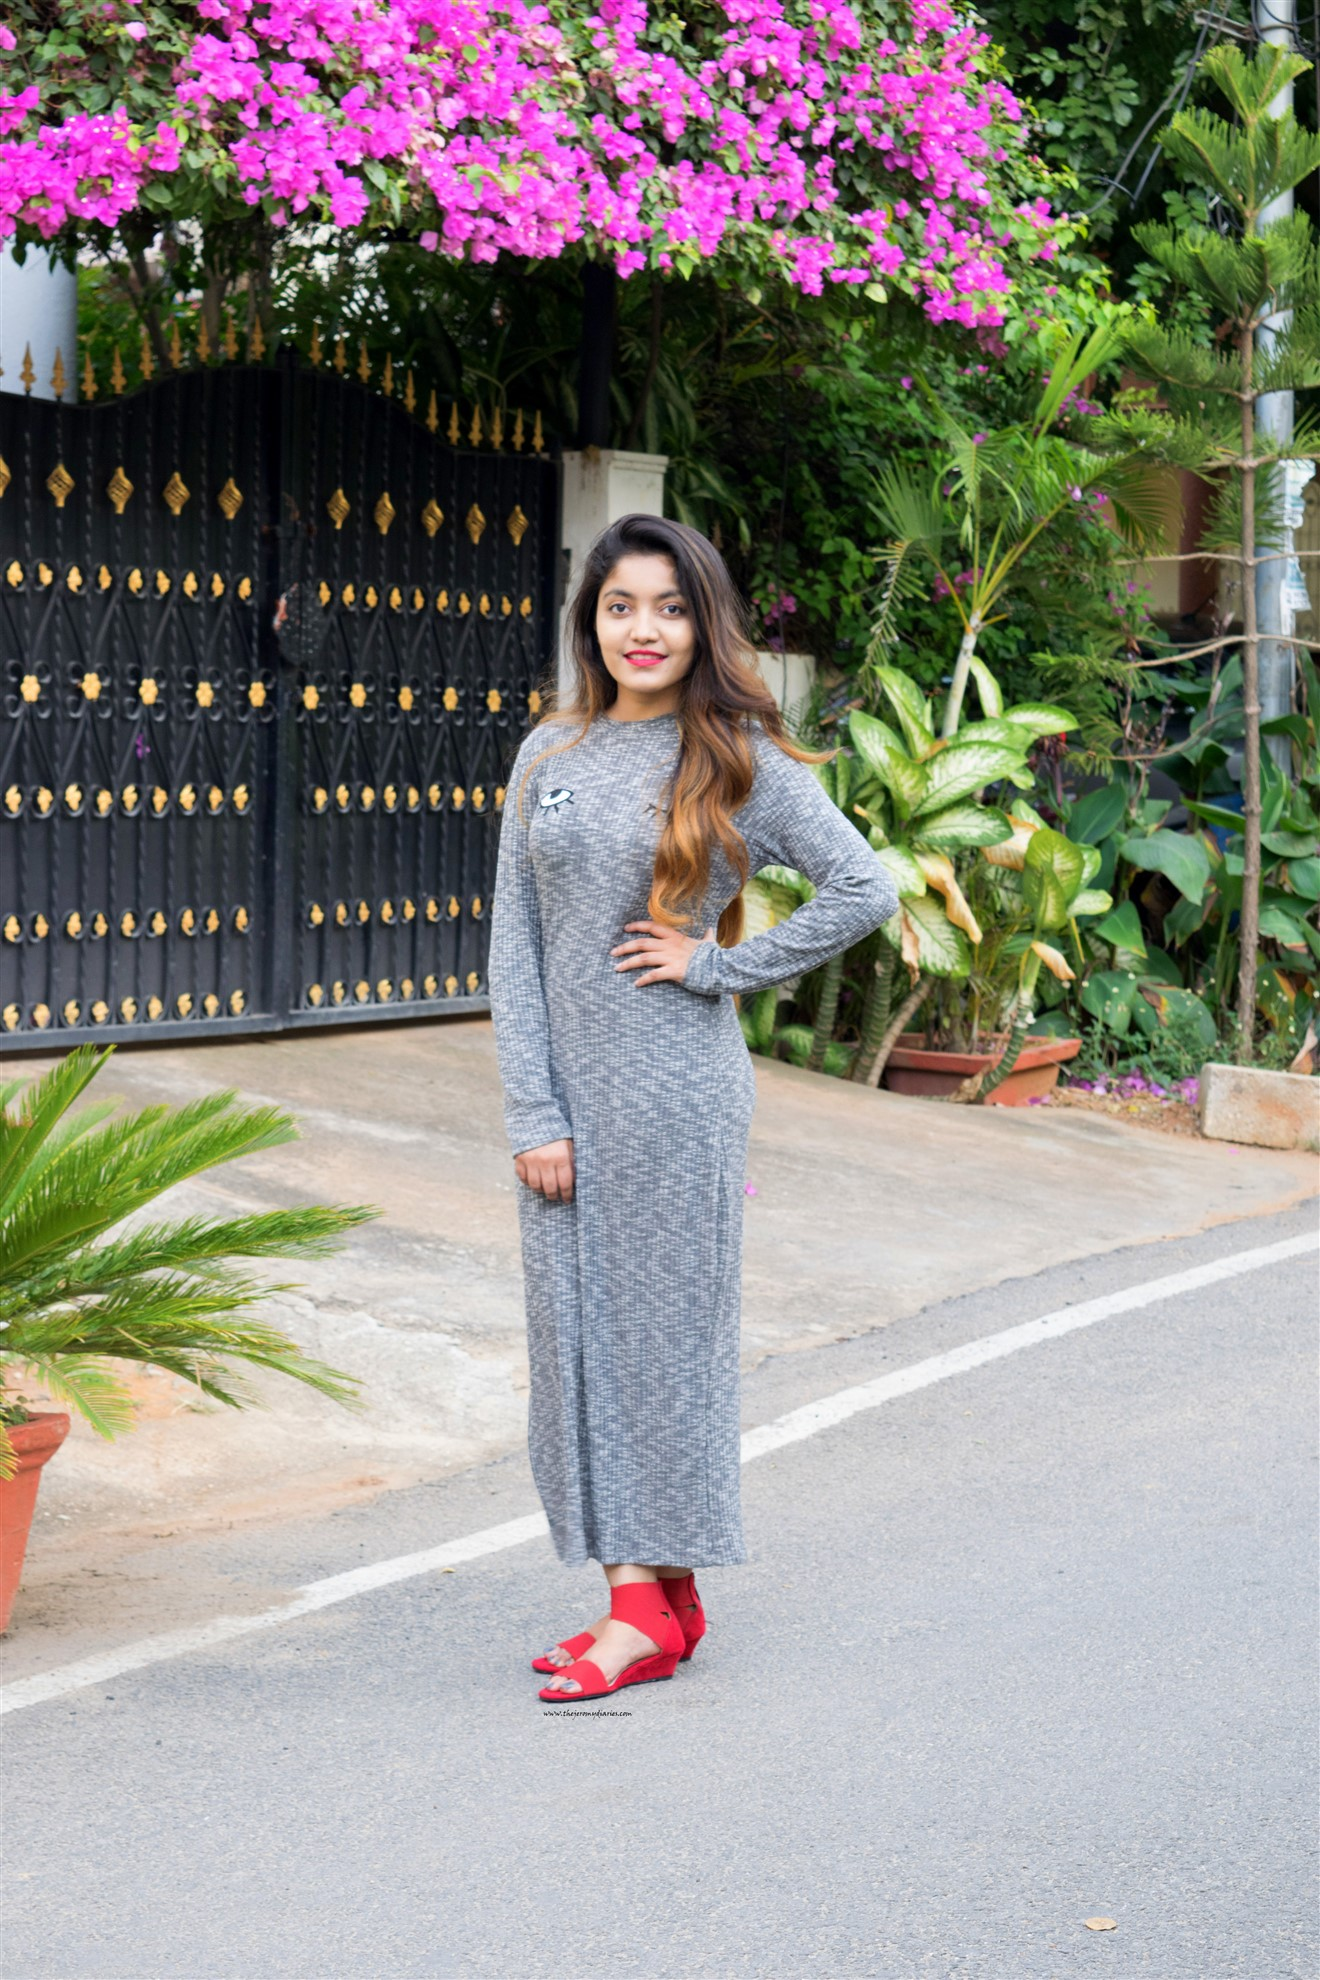 fashion-blogger-princy-mascarenhas-for-relaince-footprint-x-the-jeromy-diaries